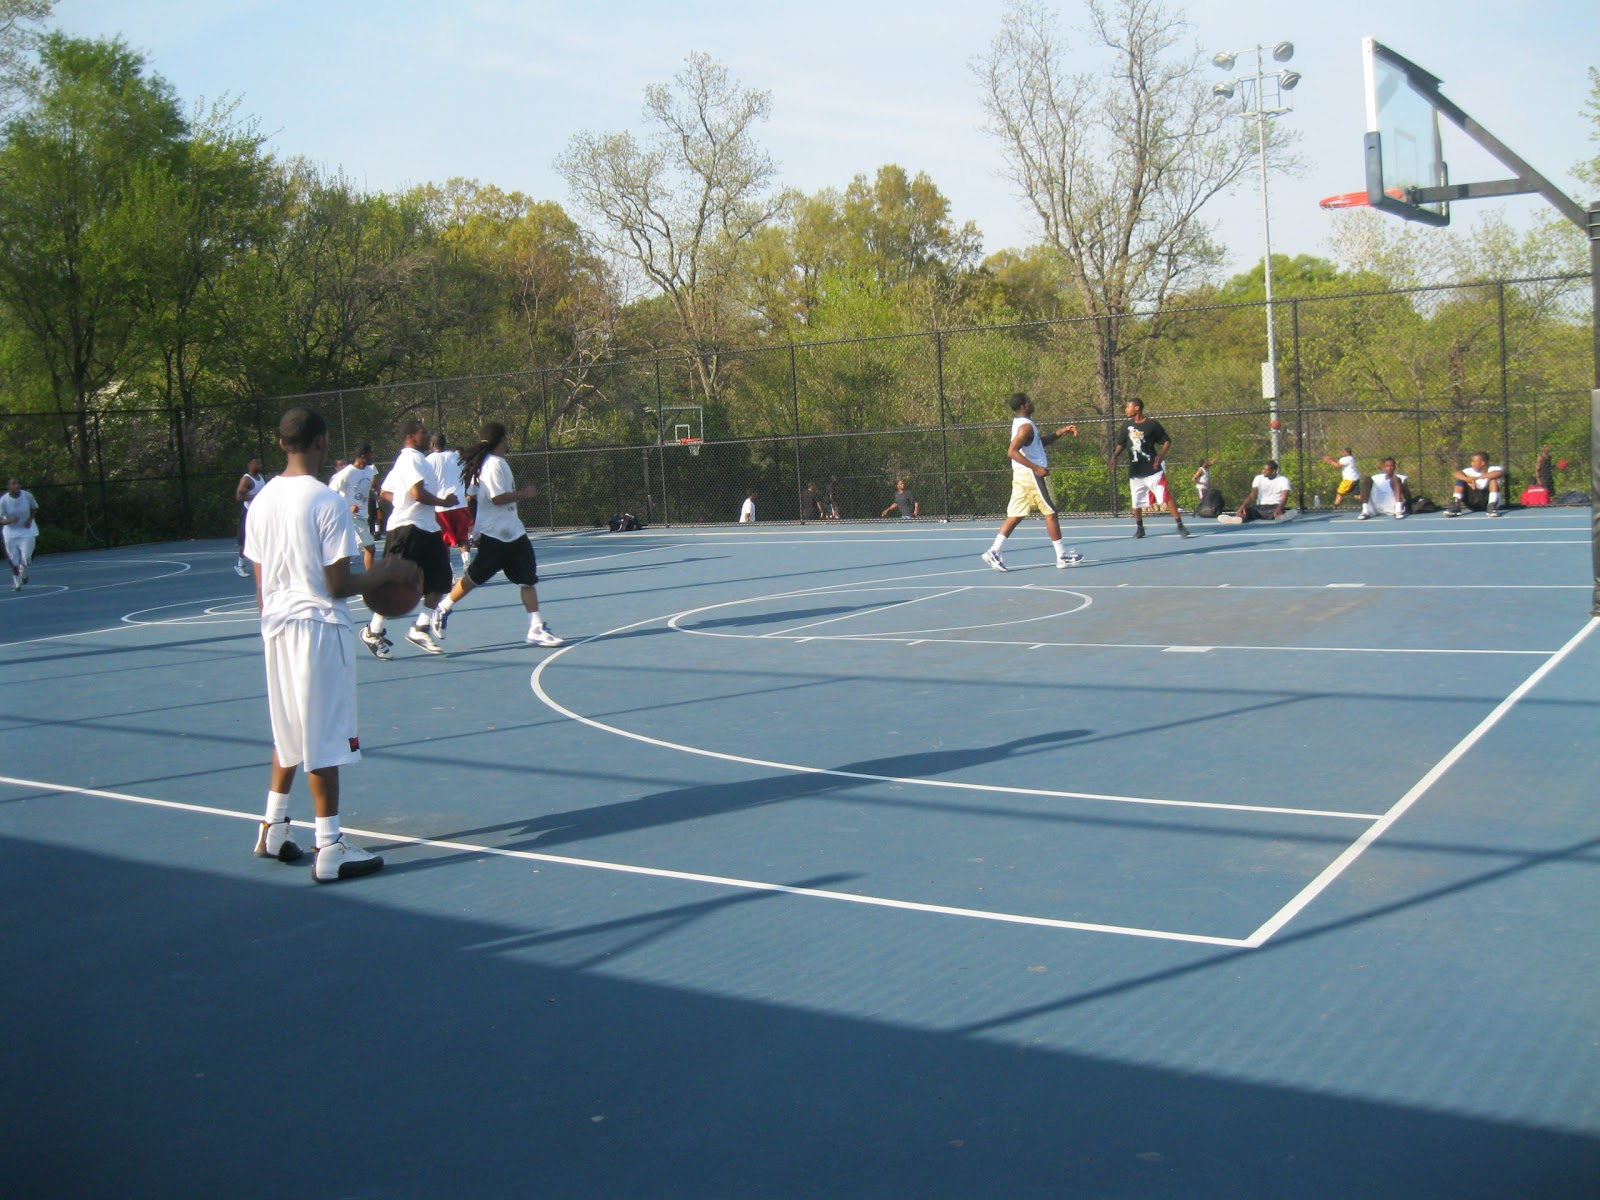 College basketball outdoor basketball court for Cheapest way to make a basketball court